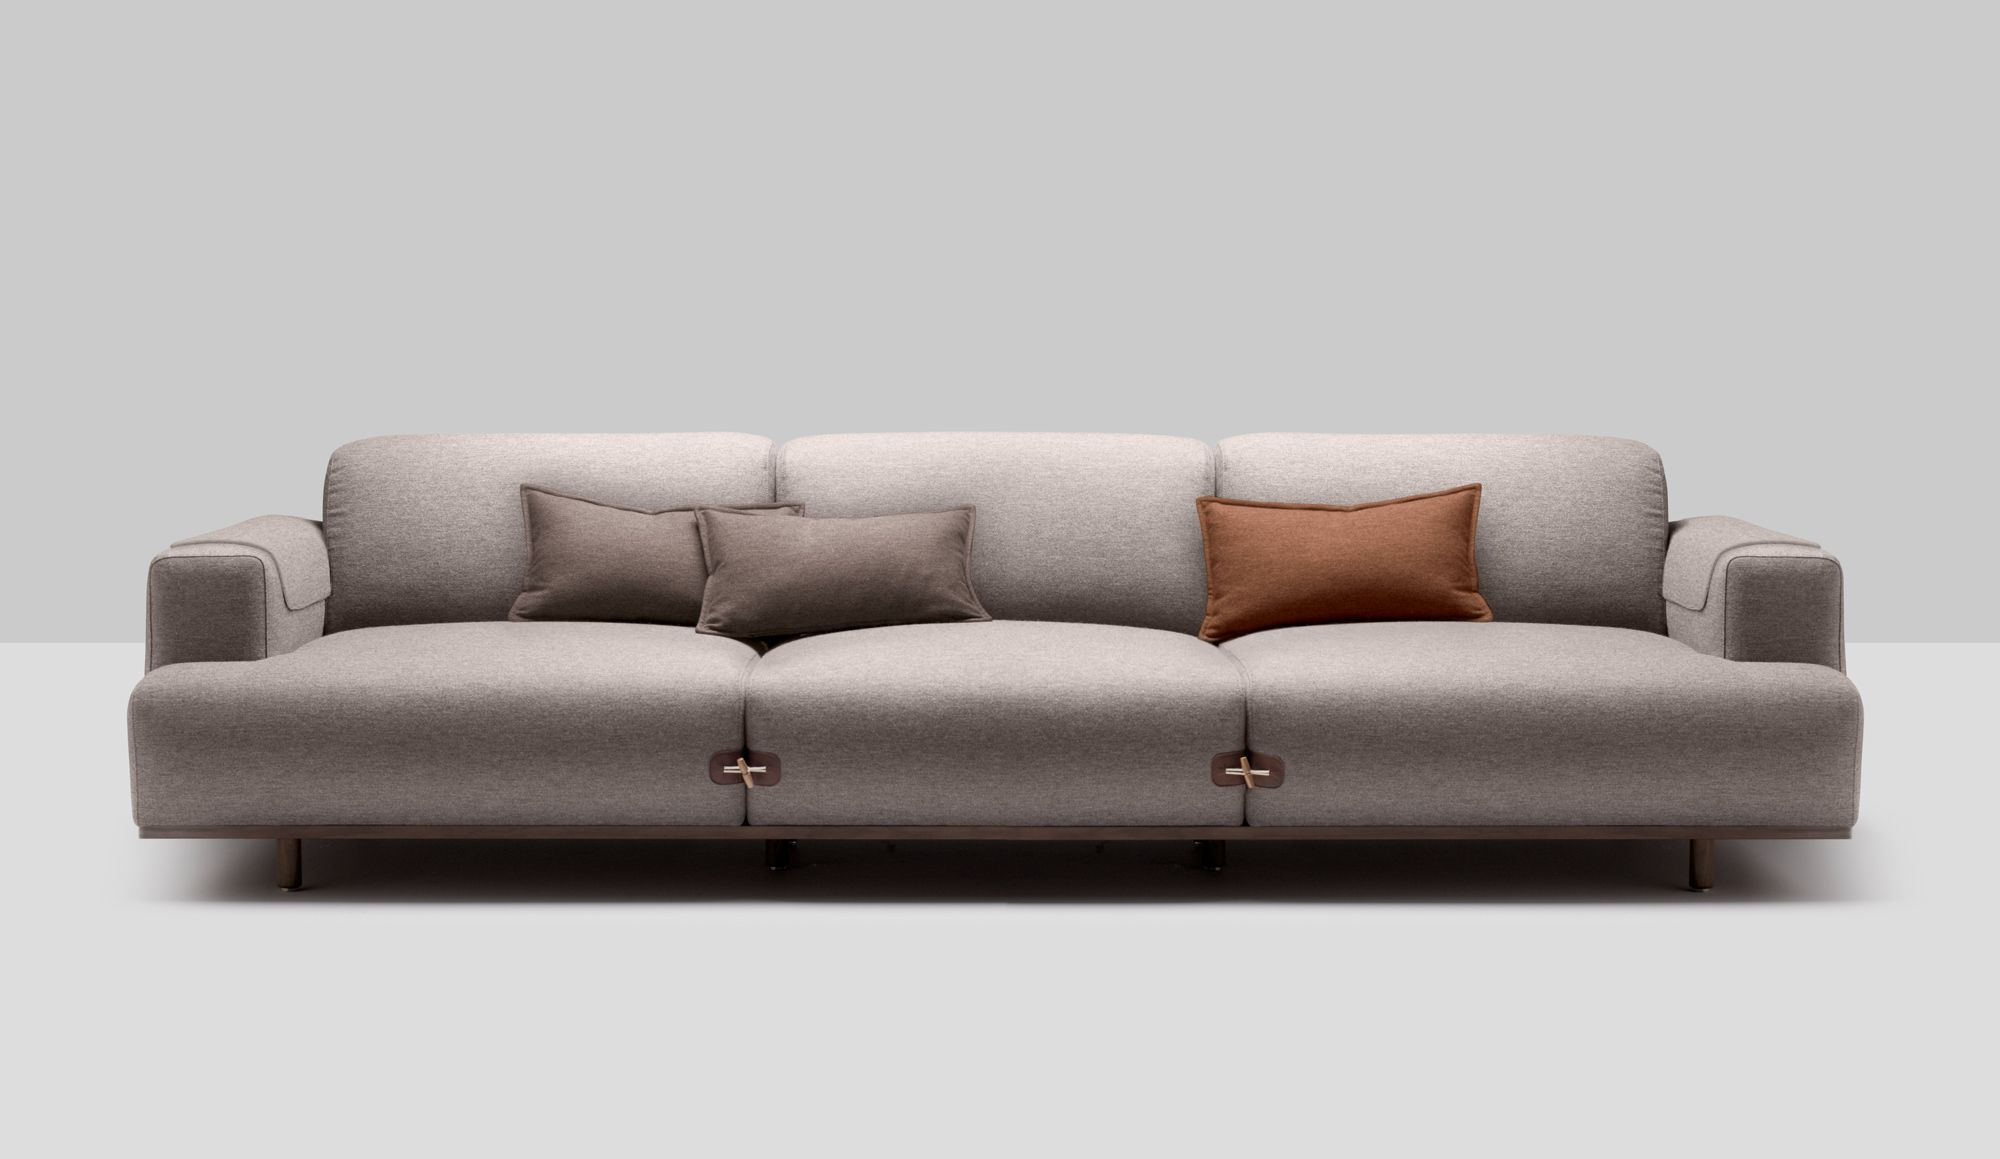 Furniture Village Hartford Sofa The Jonah Collection By James Harrison For The Home Projekte